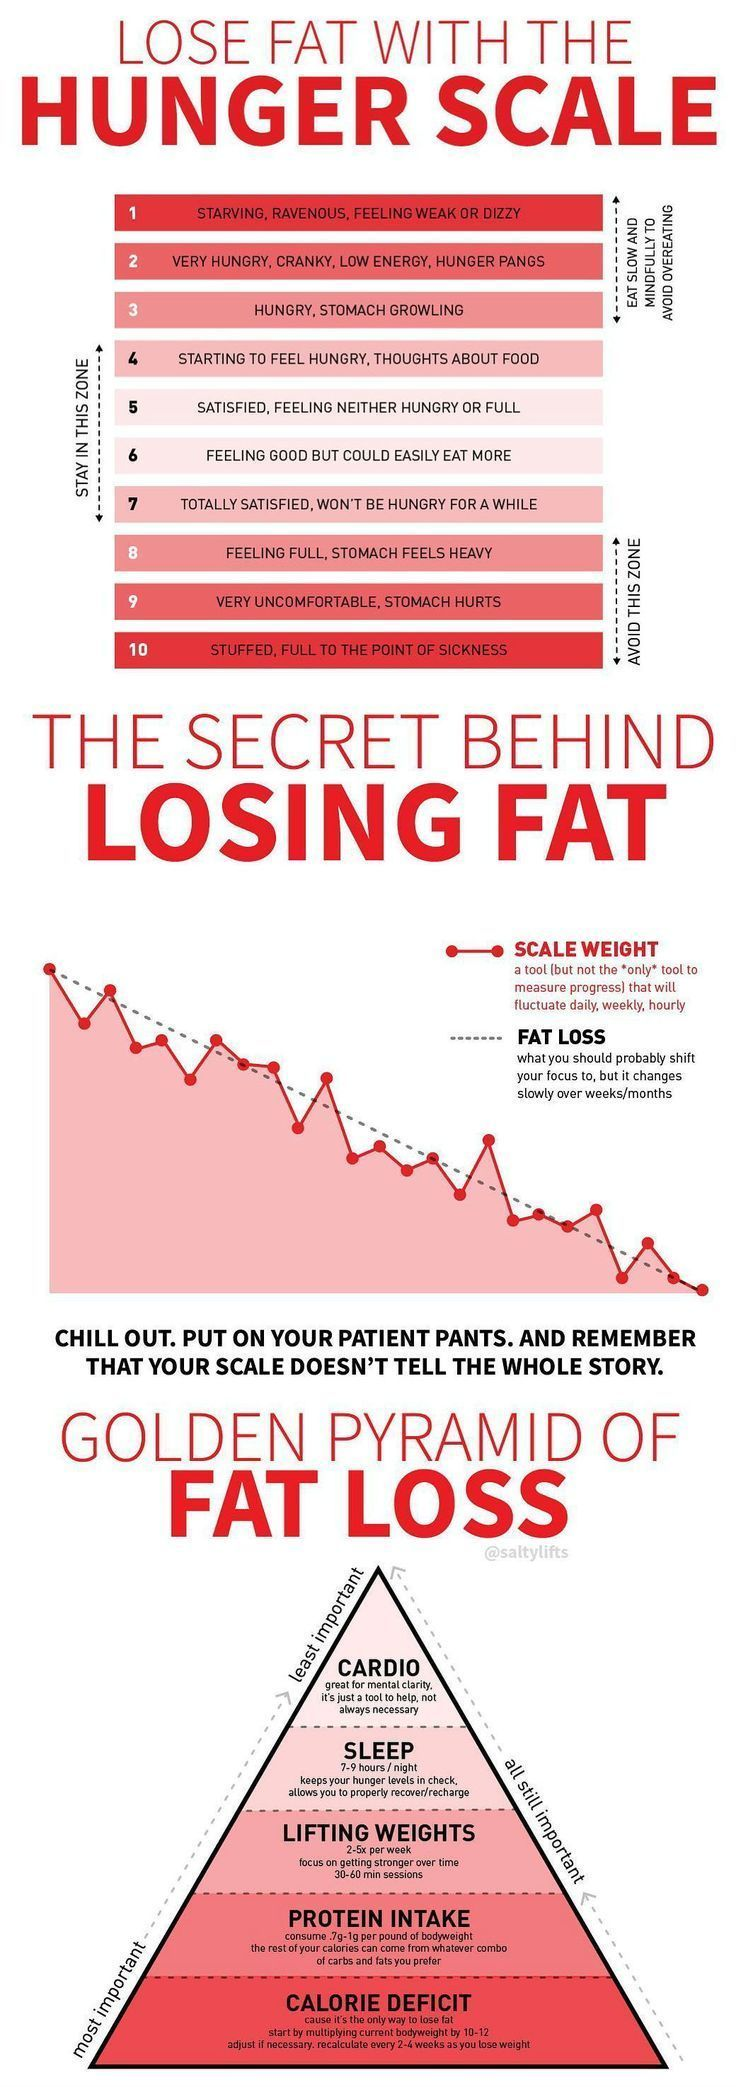 How To Feel Full And Lose Fat With The Hunger Scale Tips